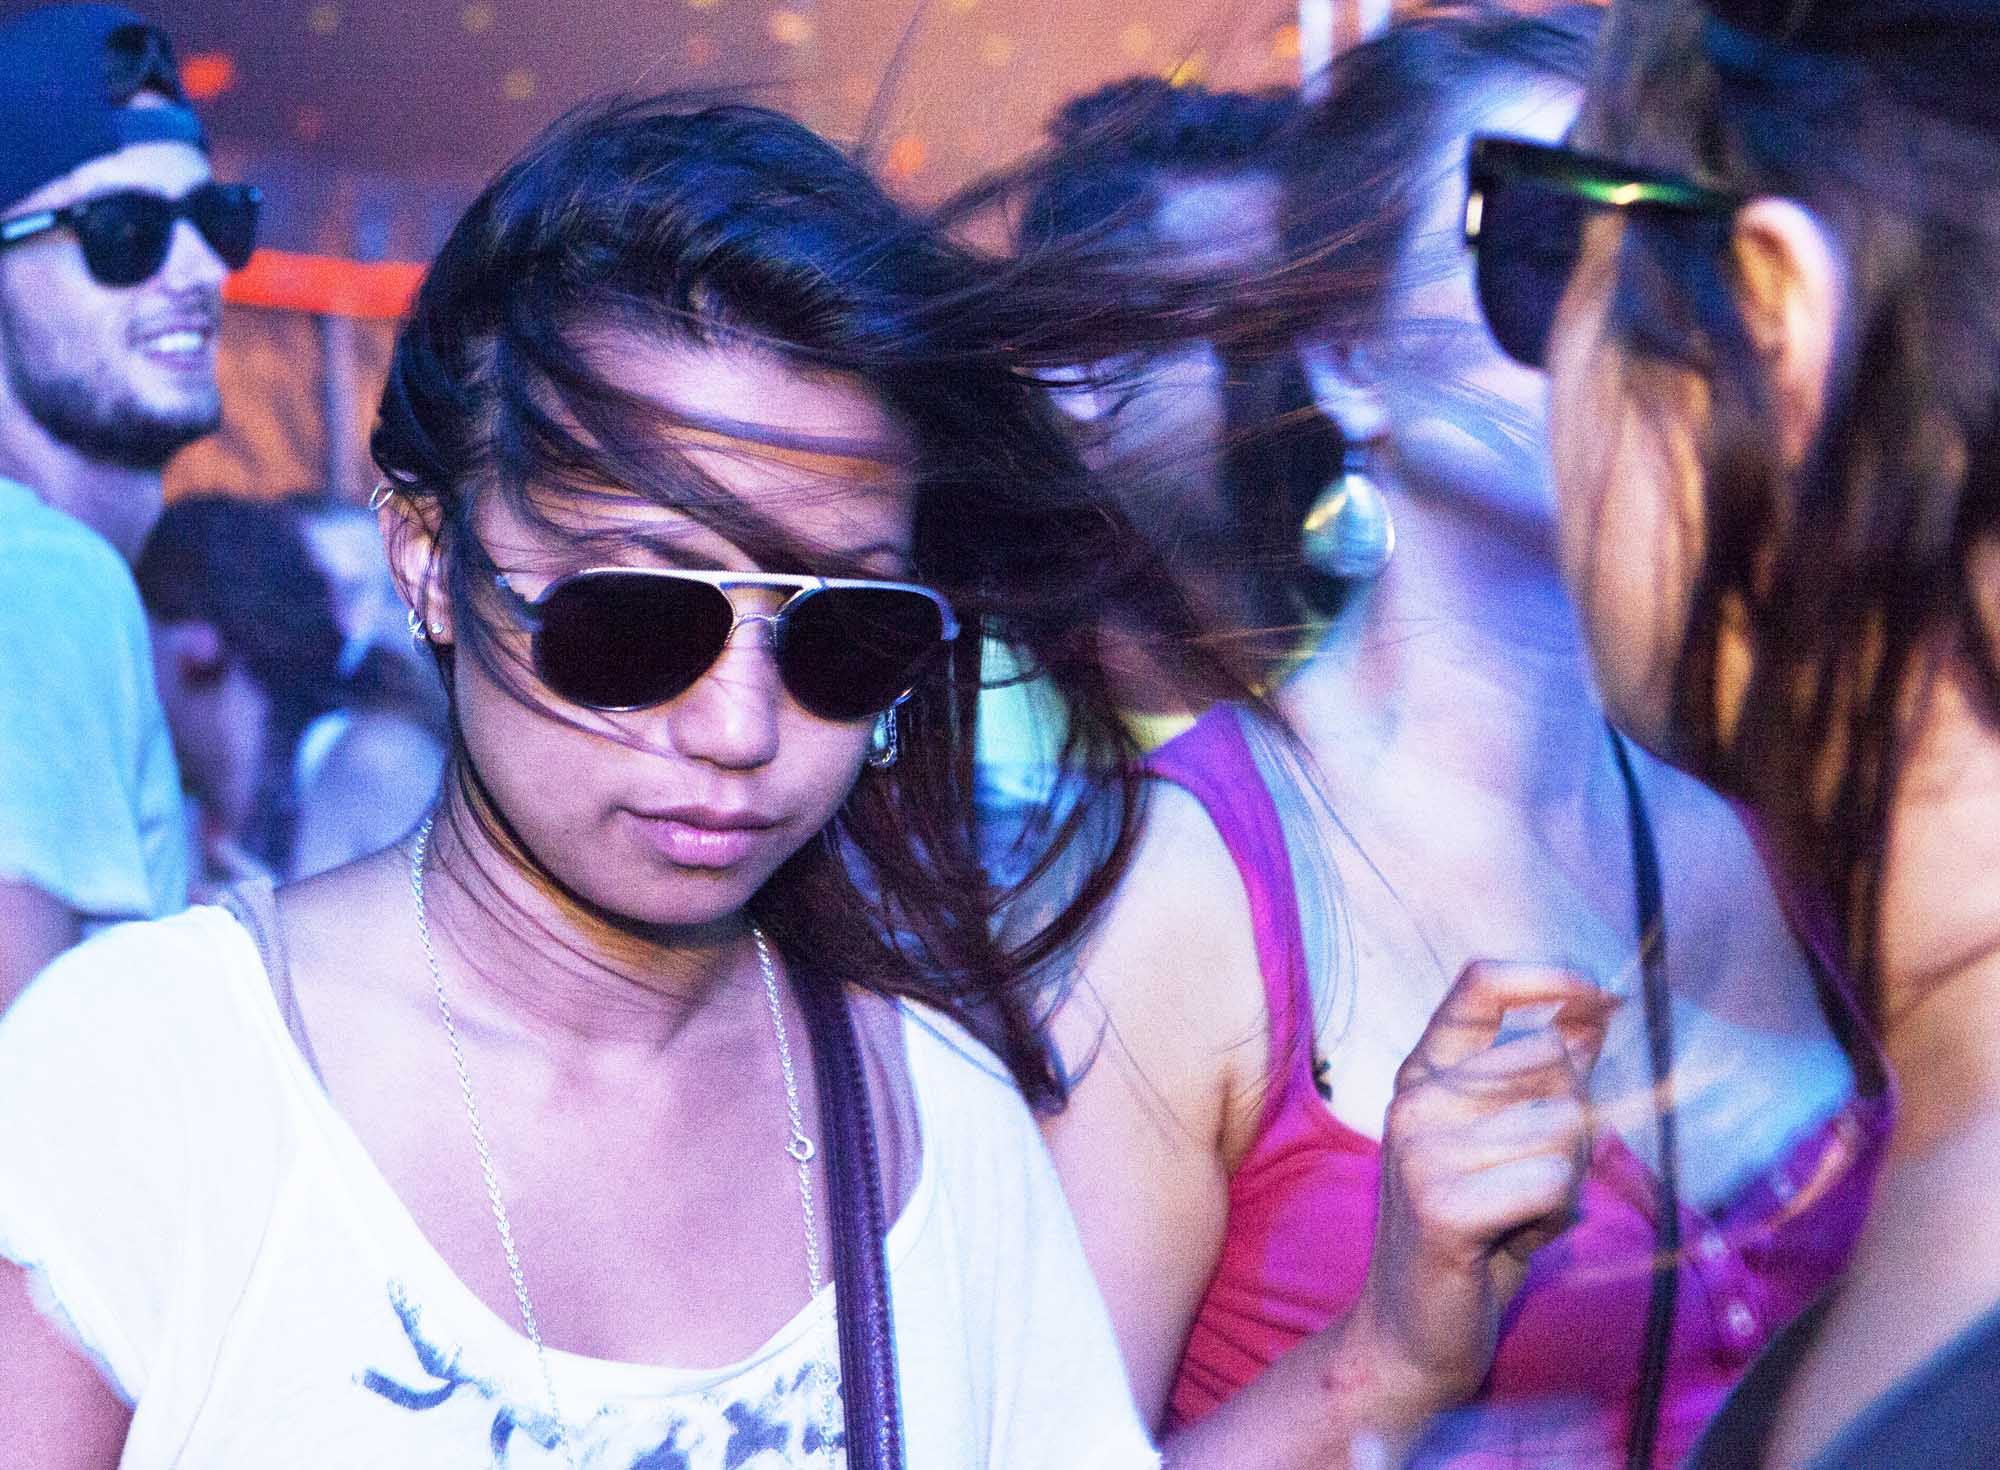 Partypeople11